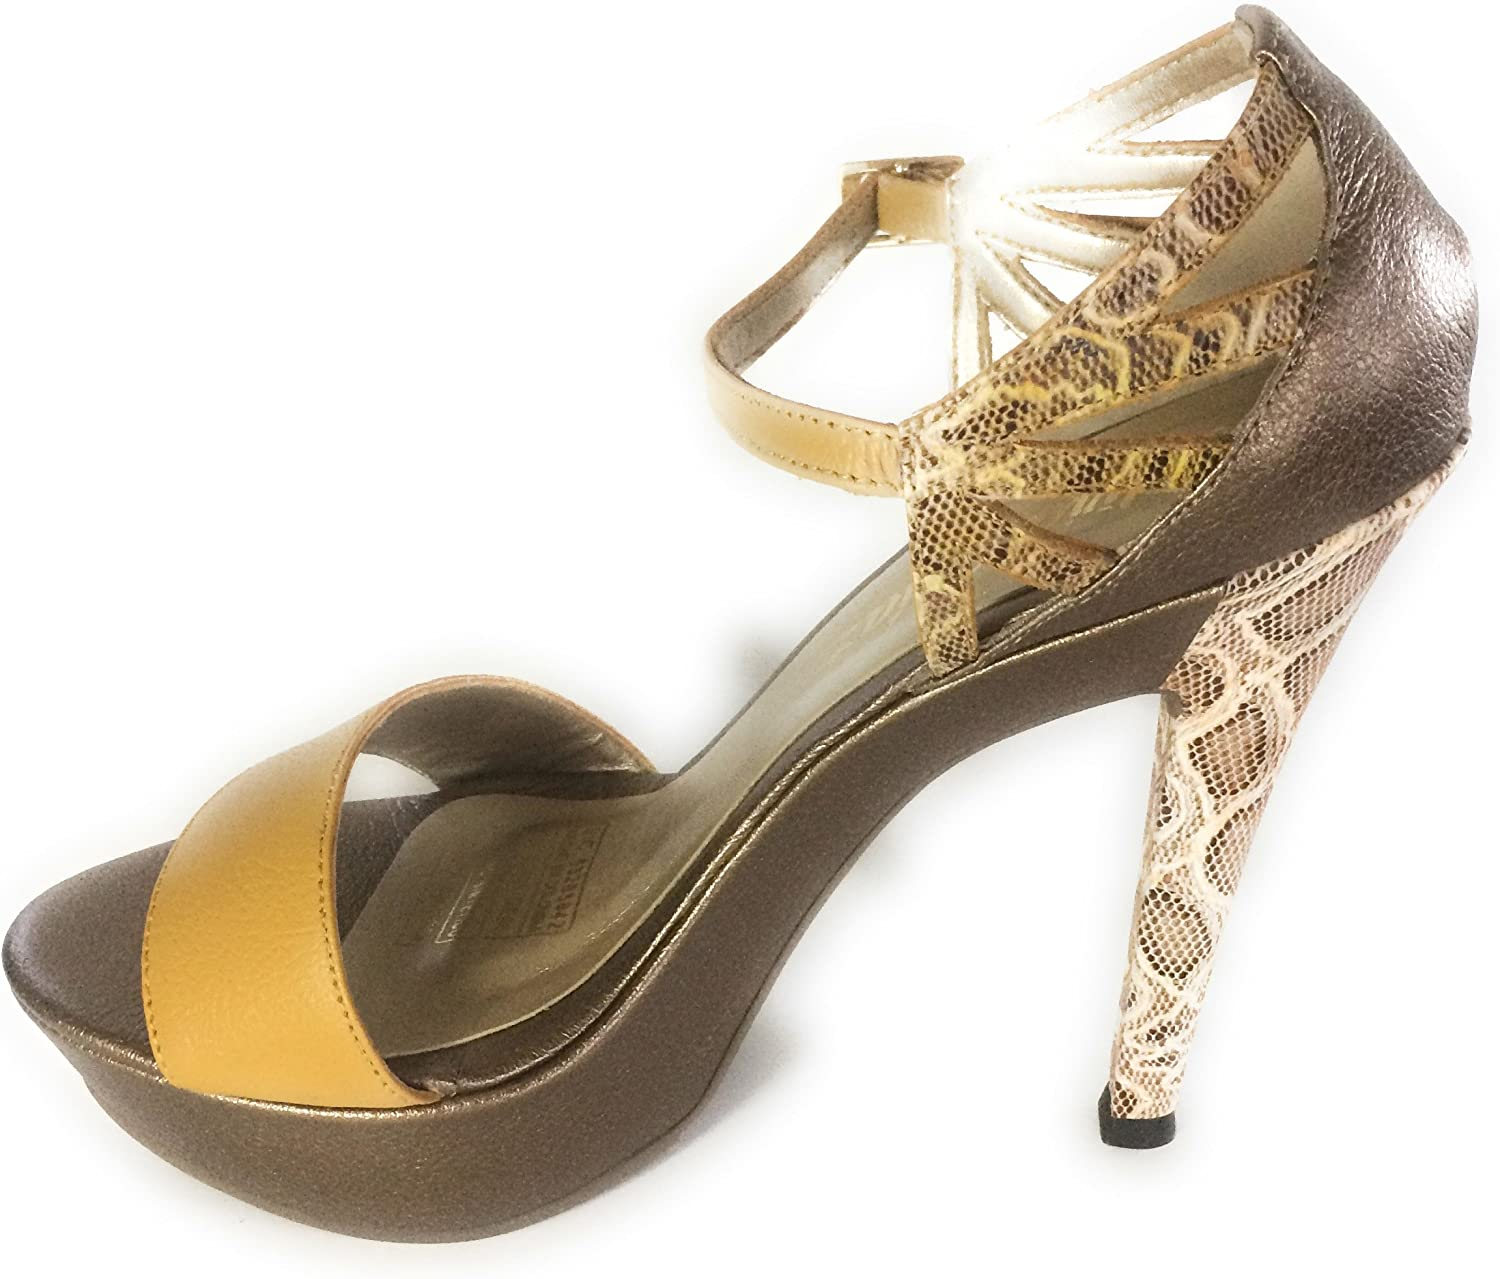 Silvia Diaz Fashion shoes Ankle Strap High Heels Mustard and Bronze